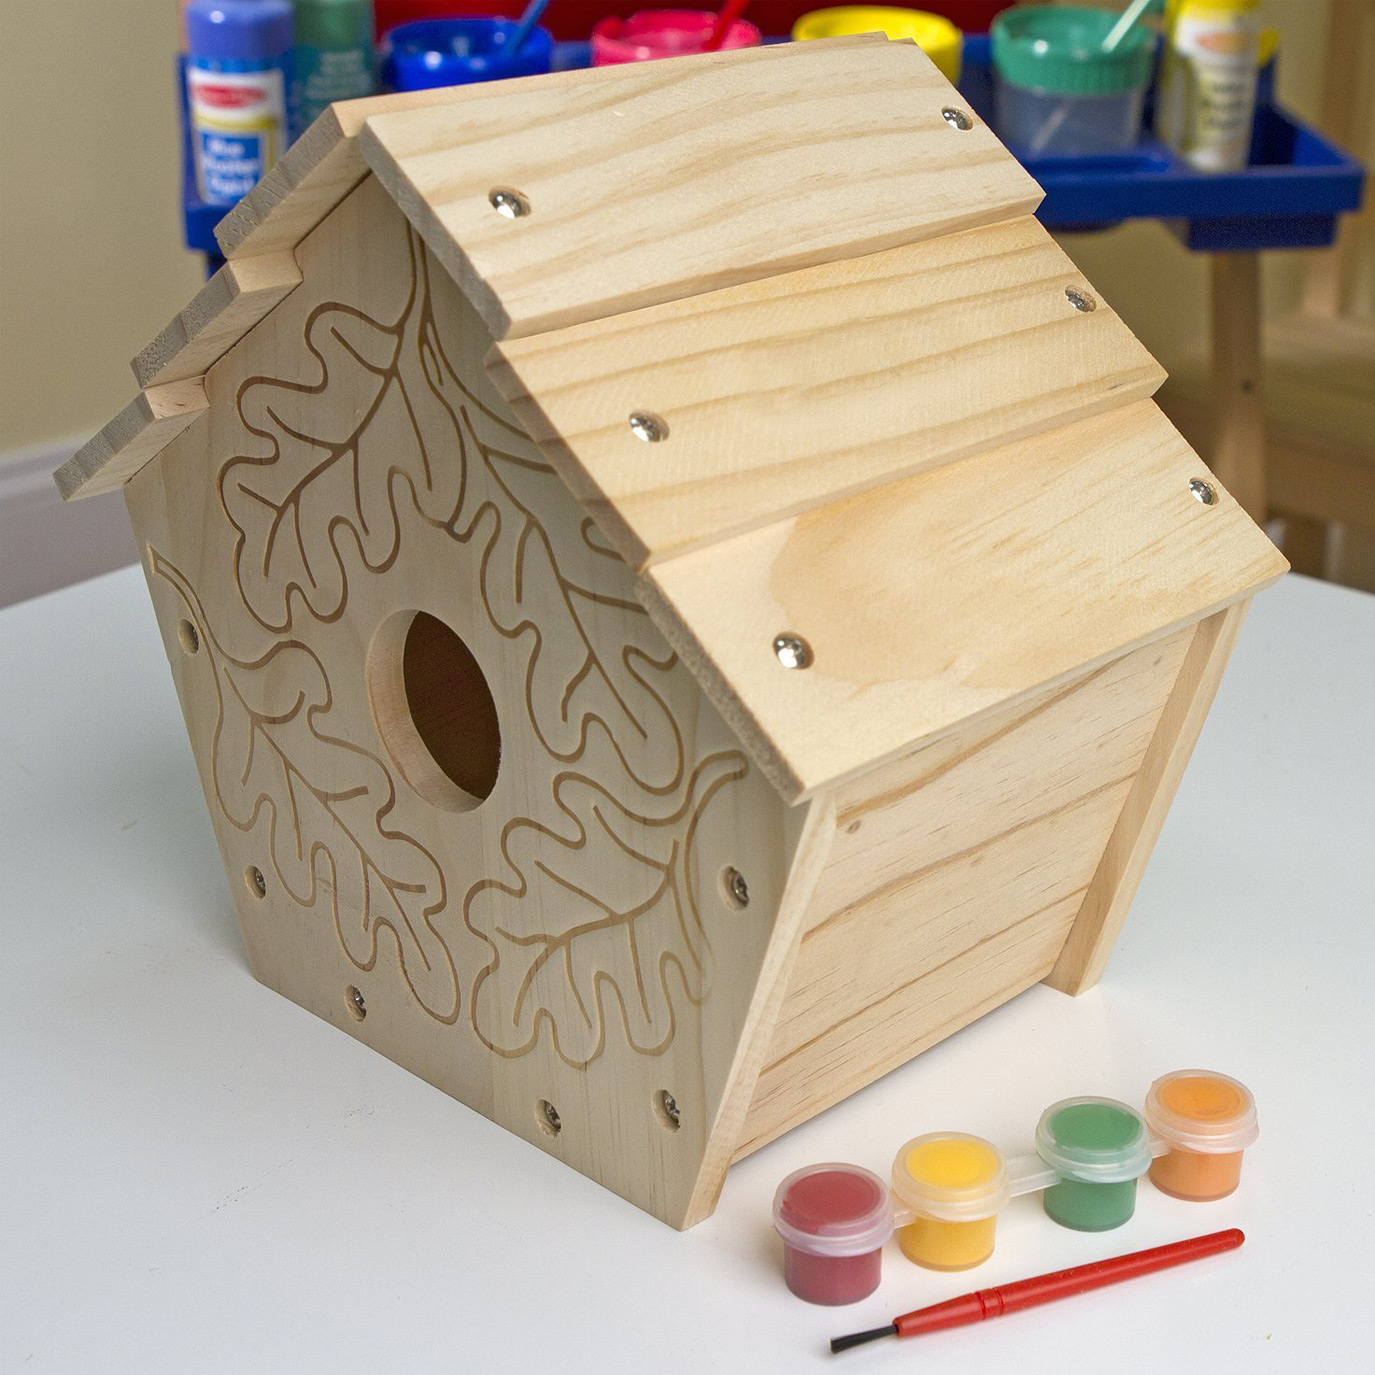 BUILD YOUR OWN WOODEN BIRDHOUSE (R175)   Encourage a love of birds and nature with this easy to assemble birdhouse for you and your child to assemble and decorate. Your feathered neighbours will love their home-tweet-home!  This great 'build your own' set contains: wooden panels, screws, 4 pots of paint and a paint brush.  This construction craft activity promotes fine motor skills, hand-eye coordination, problem solving, and encourages artistic ability as well as an appreciation for nature.  Suitable for ages 5 years and older.